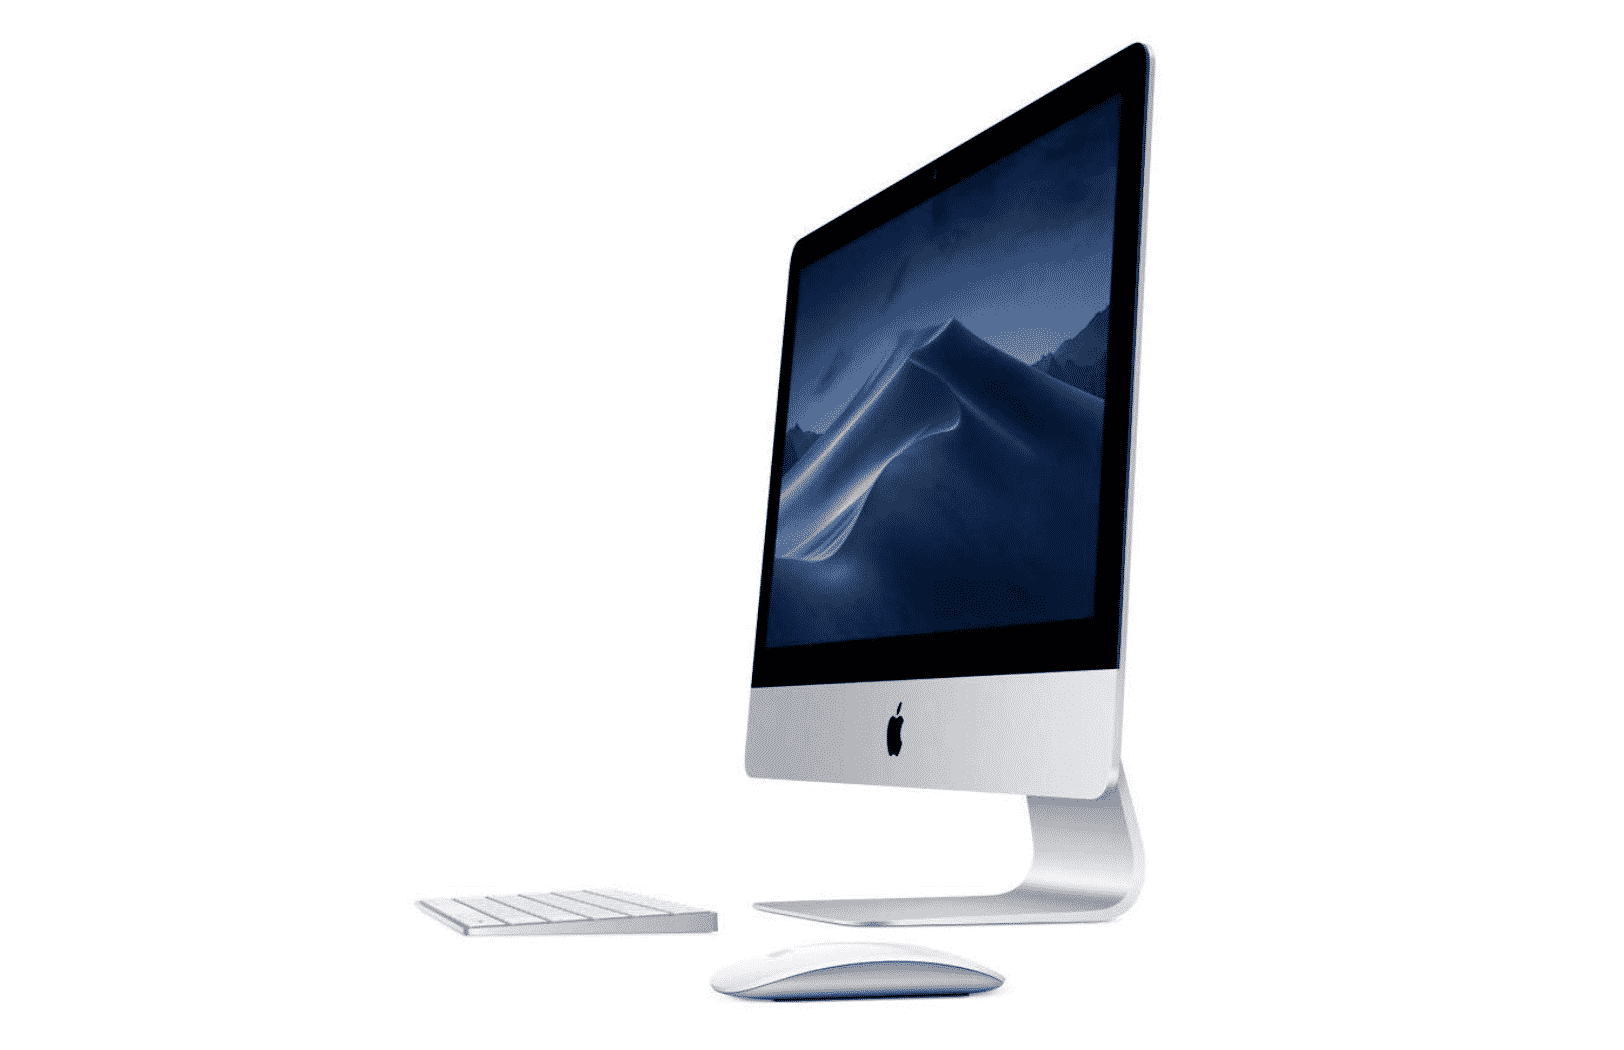 The 21 inch iMac is Now Only $950